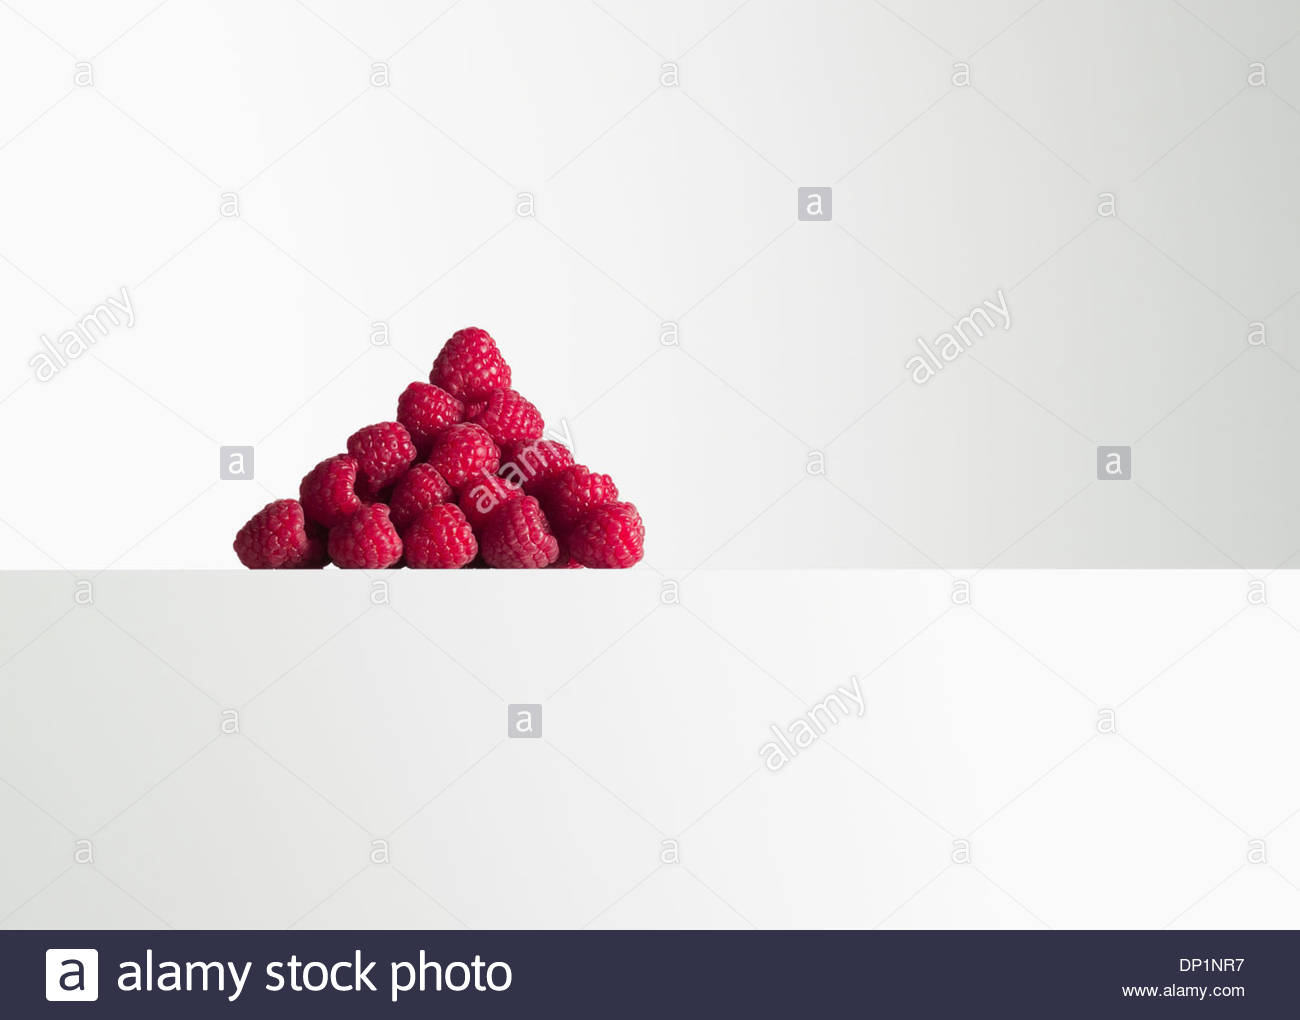 Raspberries in pile - Stock Image